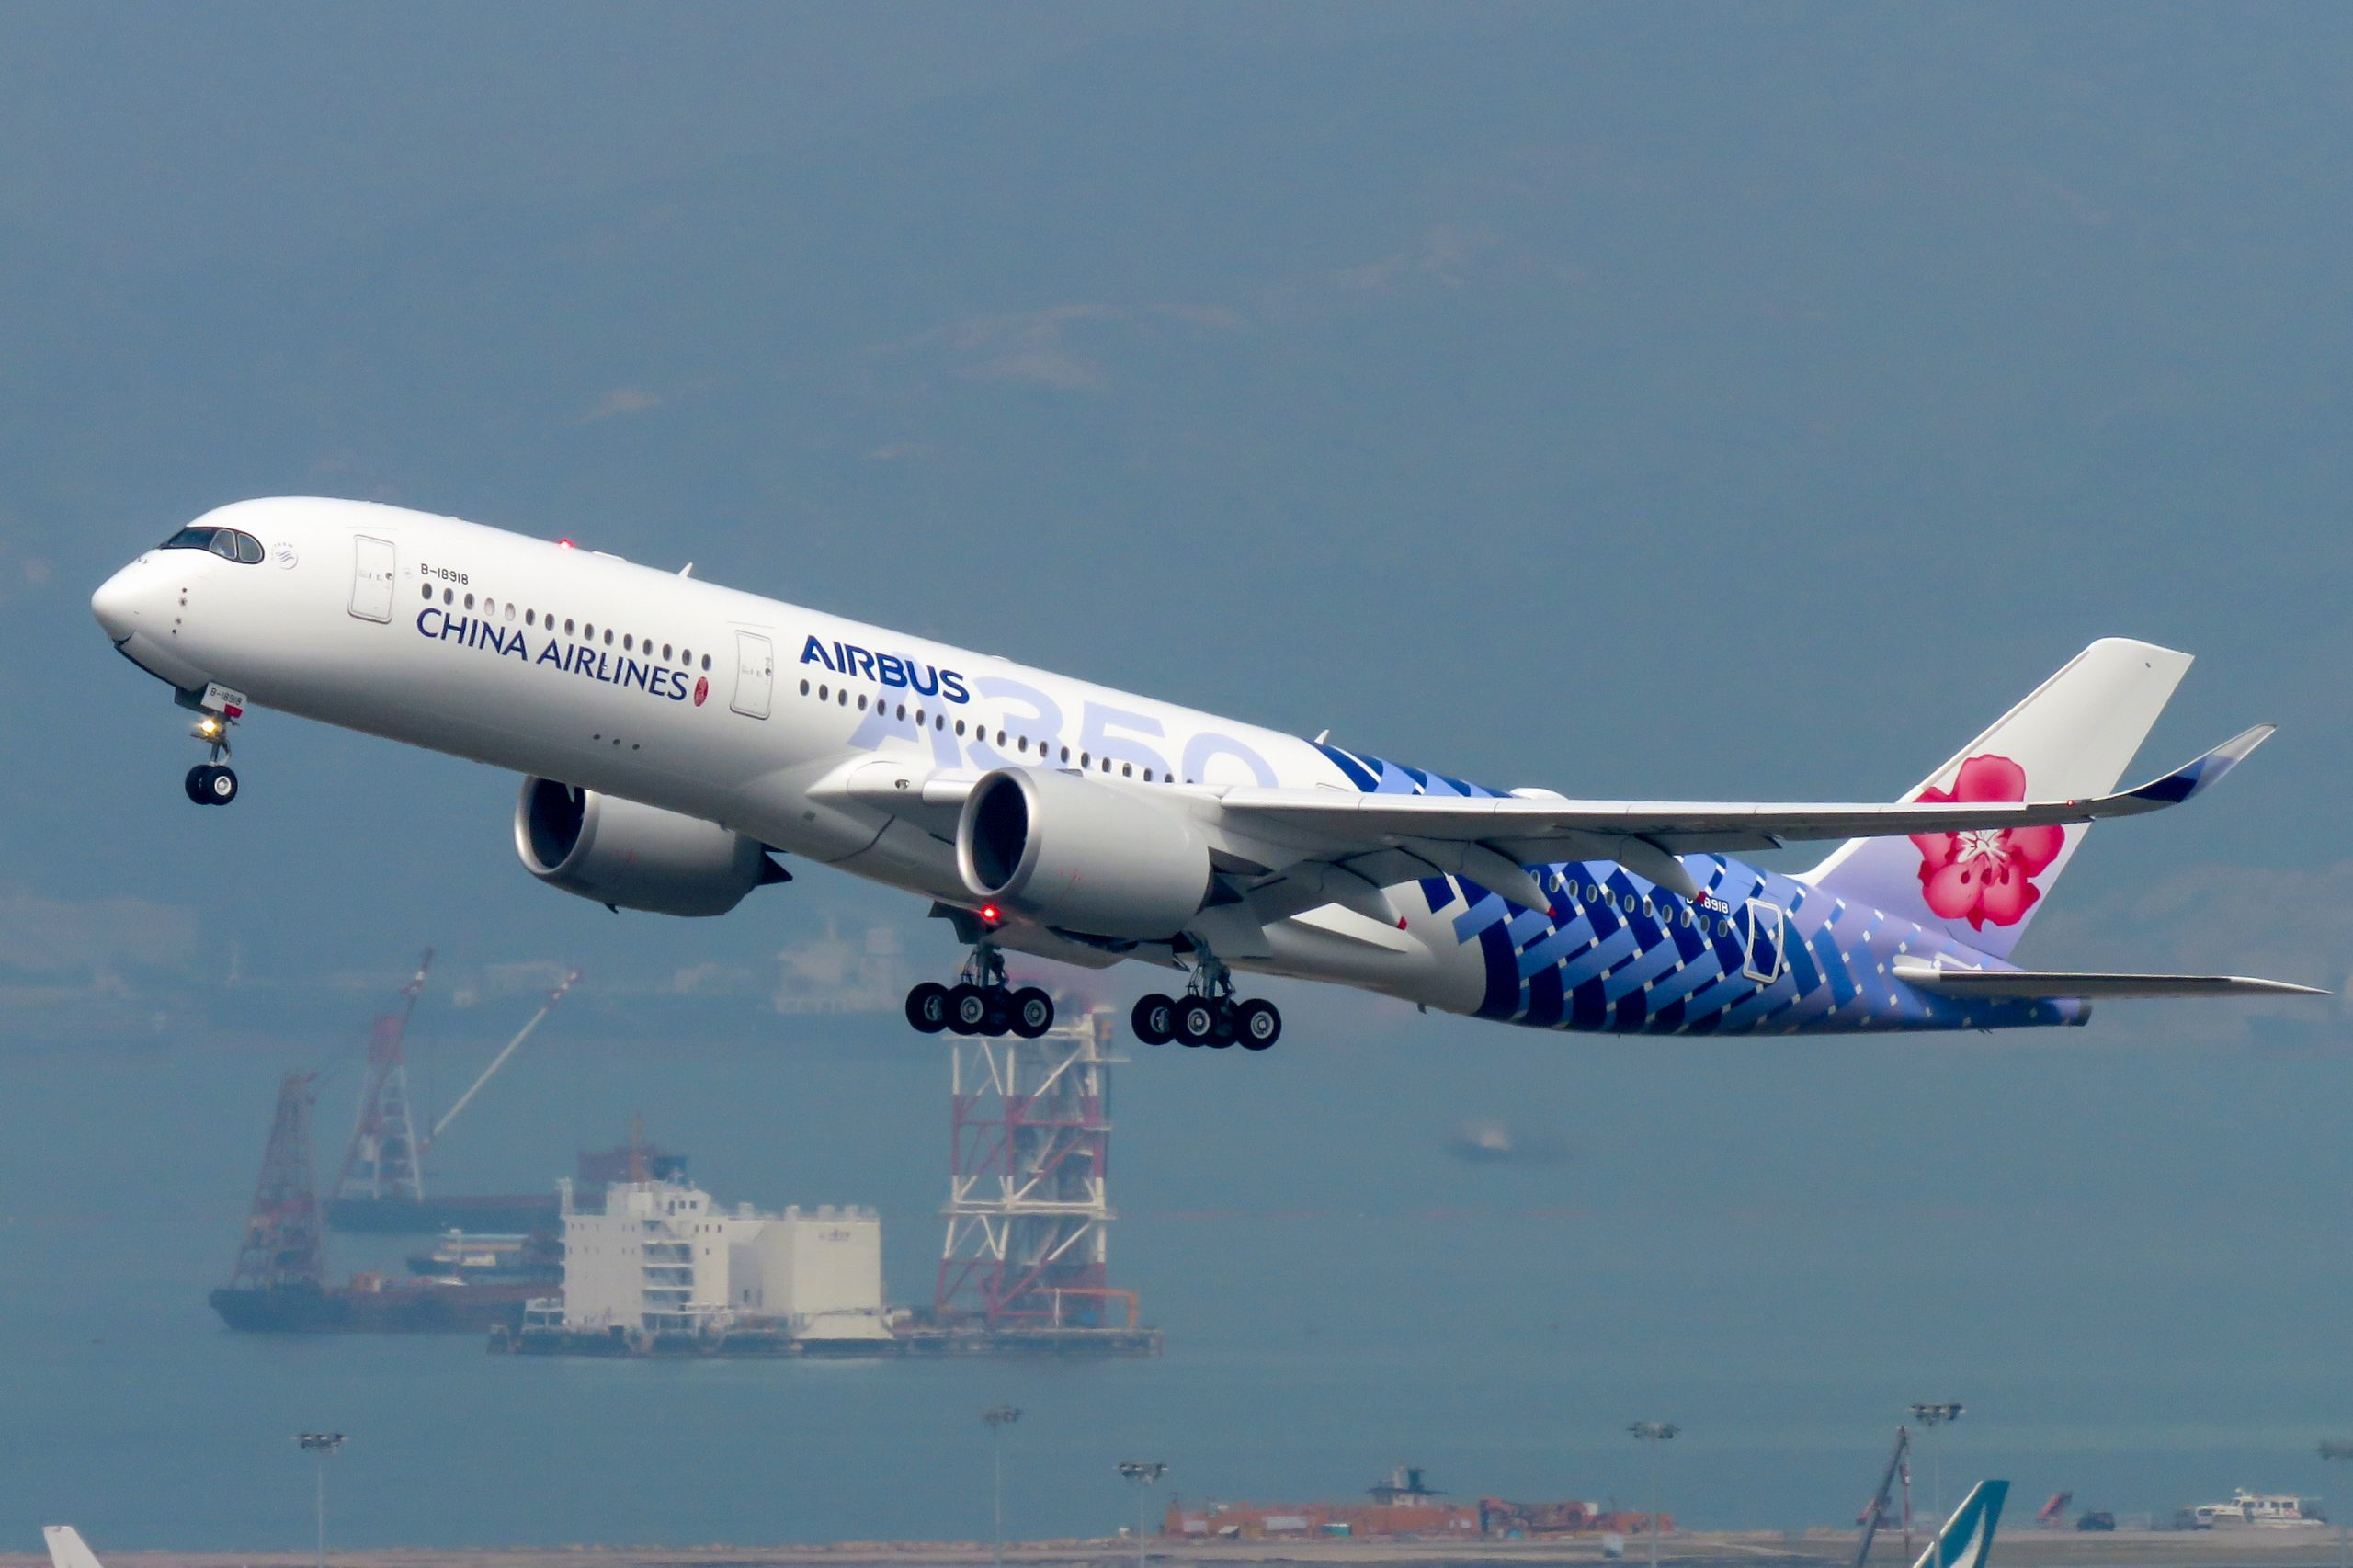 En Airbus A350-900 fra China Airlines. Foto: N509FZ, CC 4.0